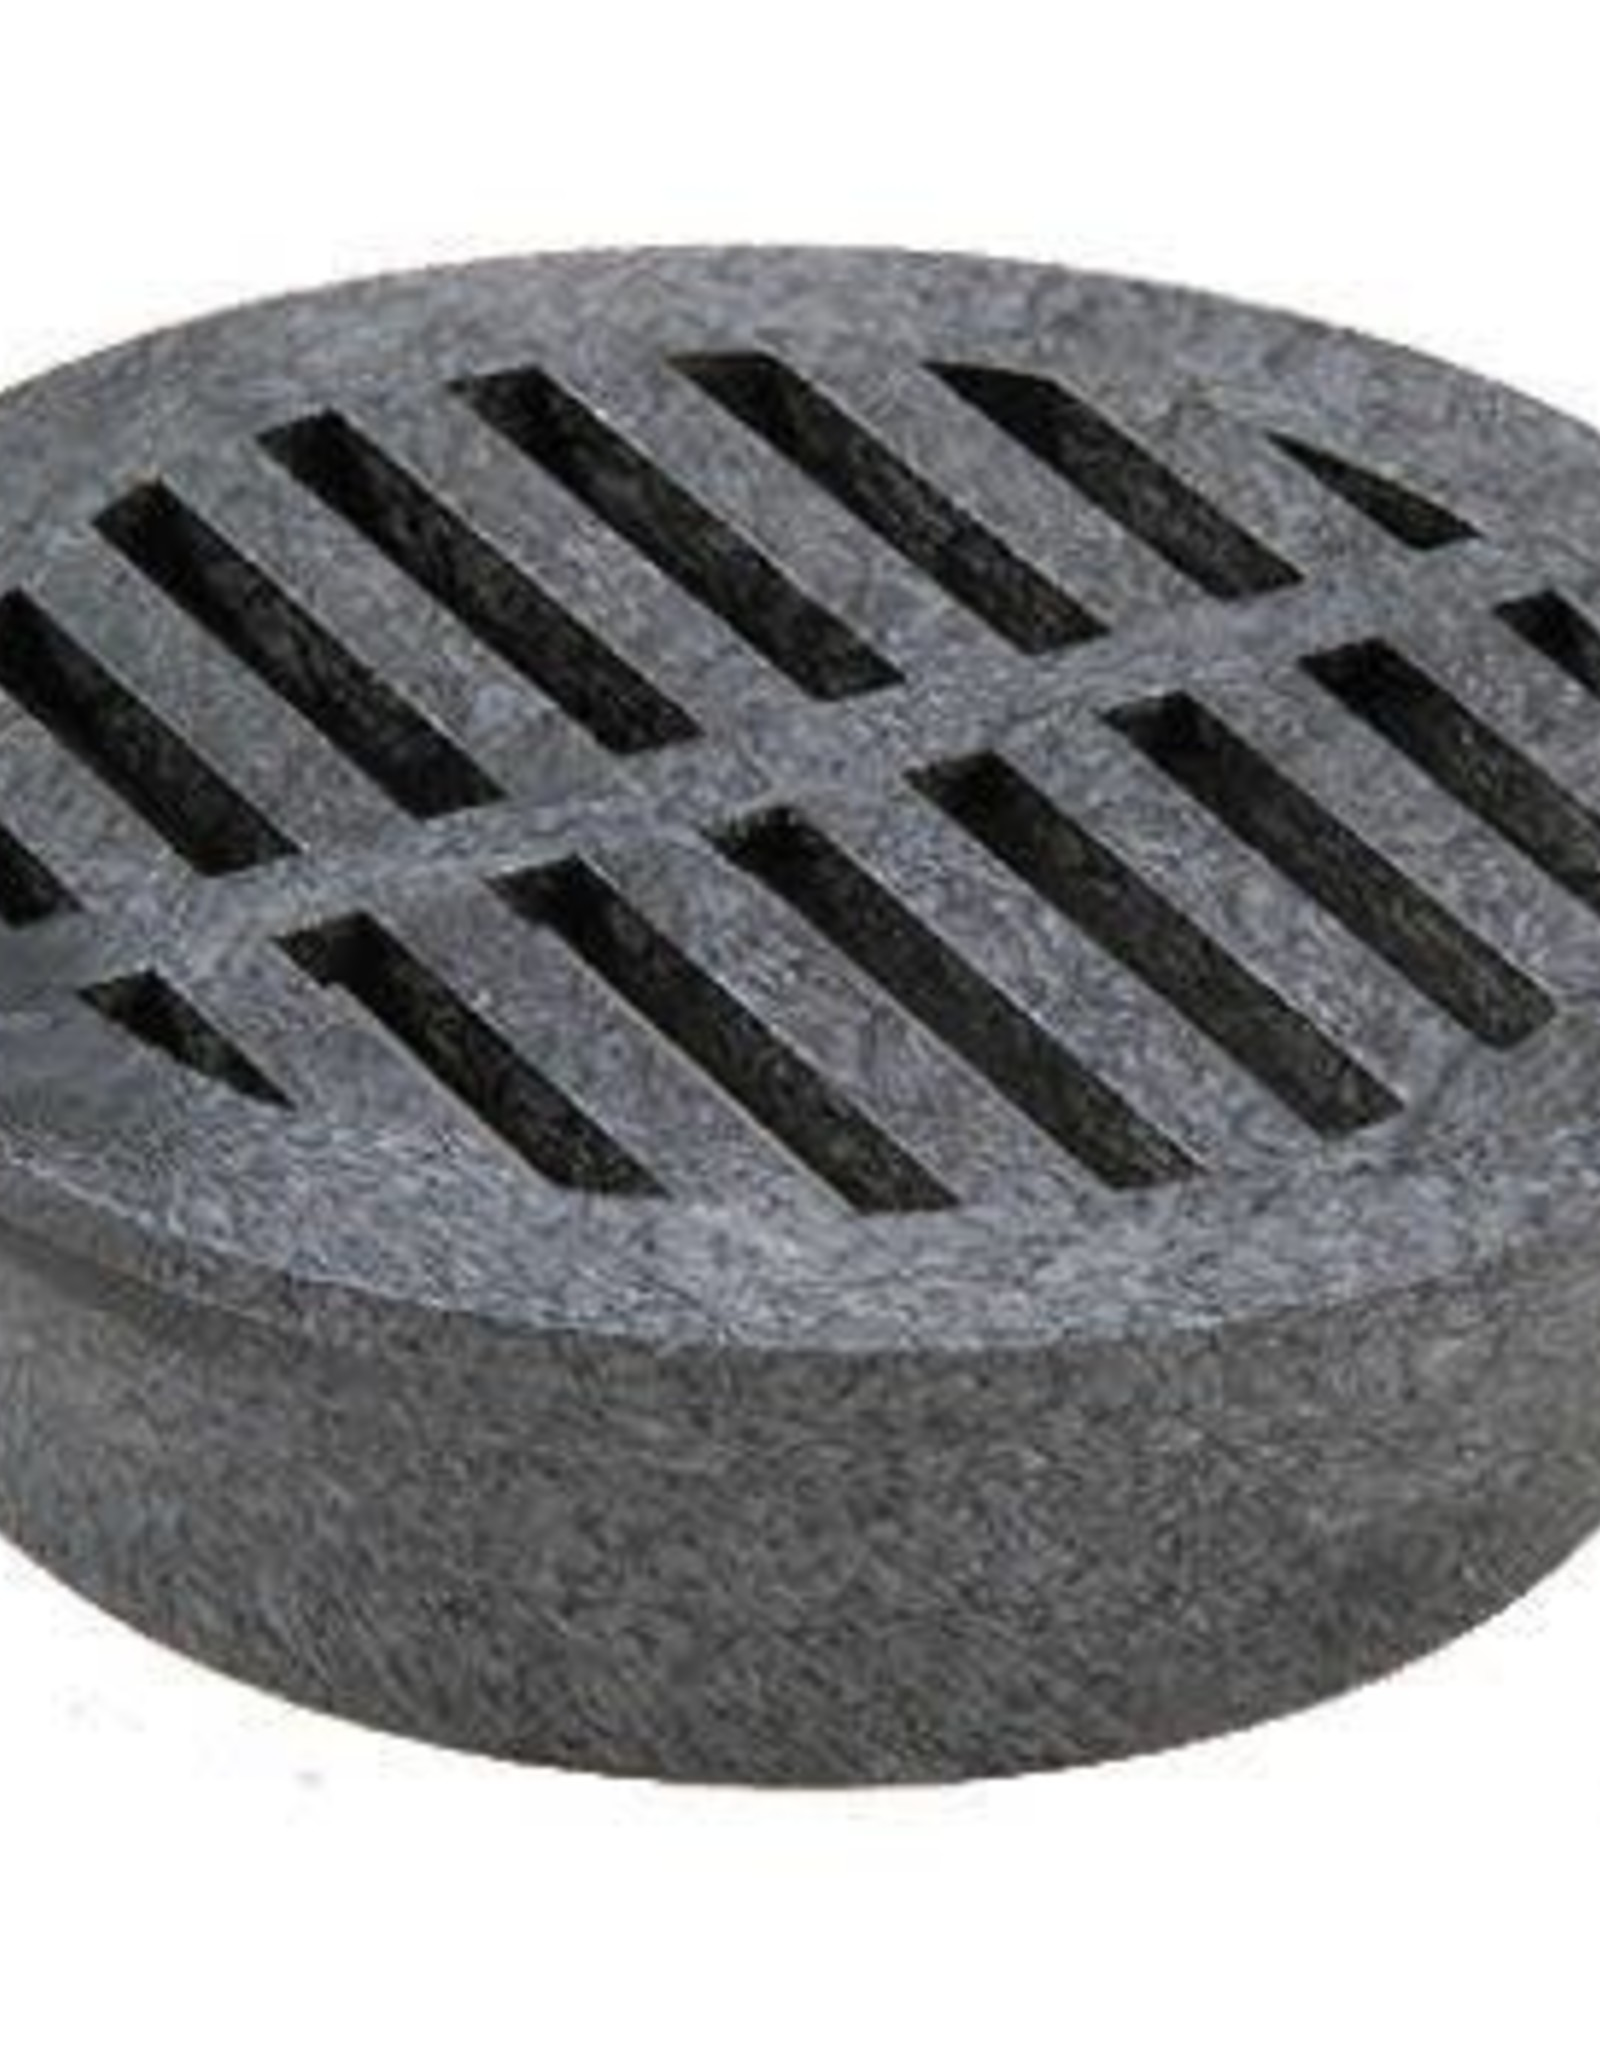 NDS Drainage NDS 40 Plastic Round Foam Polyolefin Grate, Black